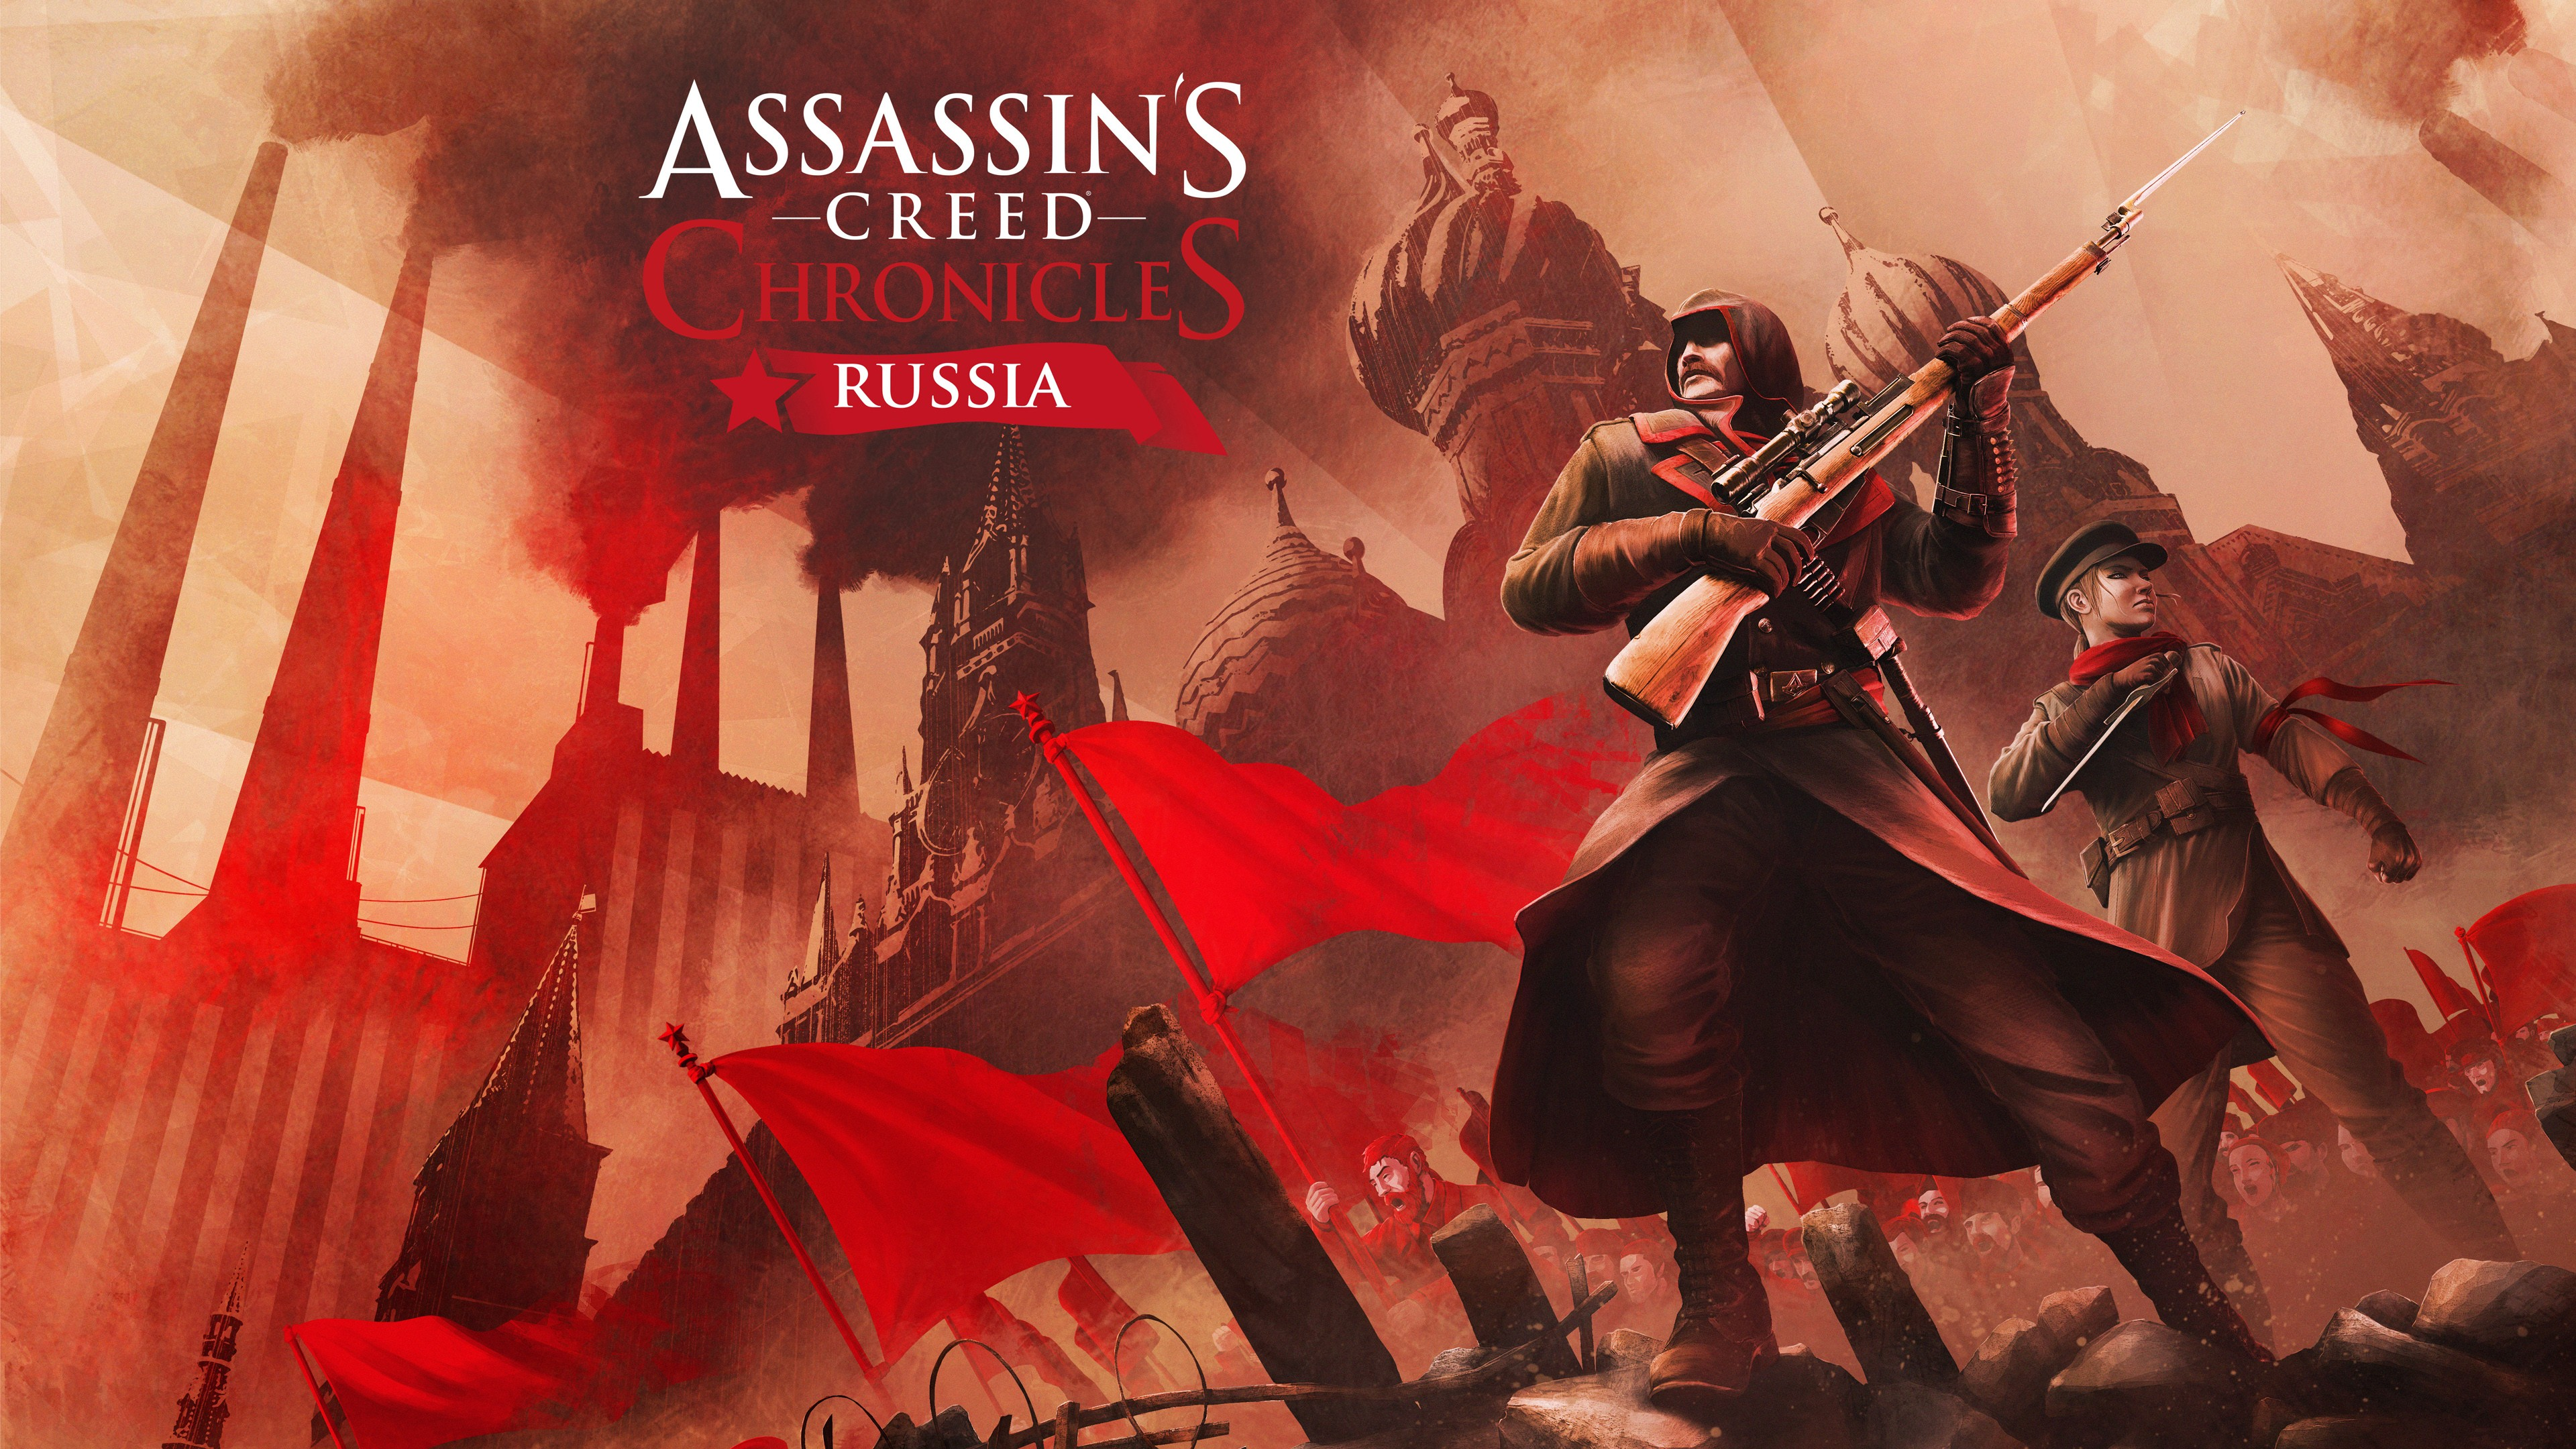 assassins creed chronicles russia 4k